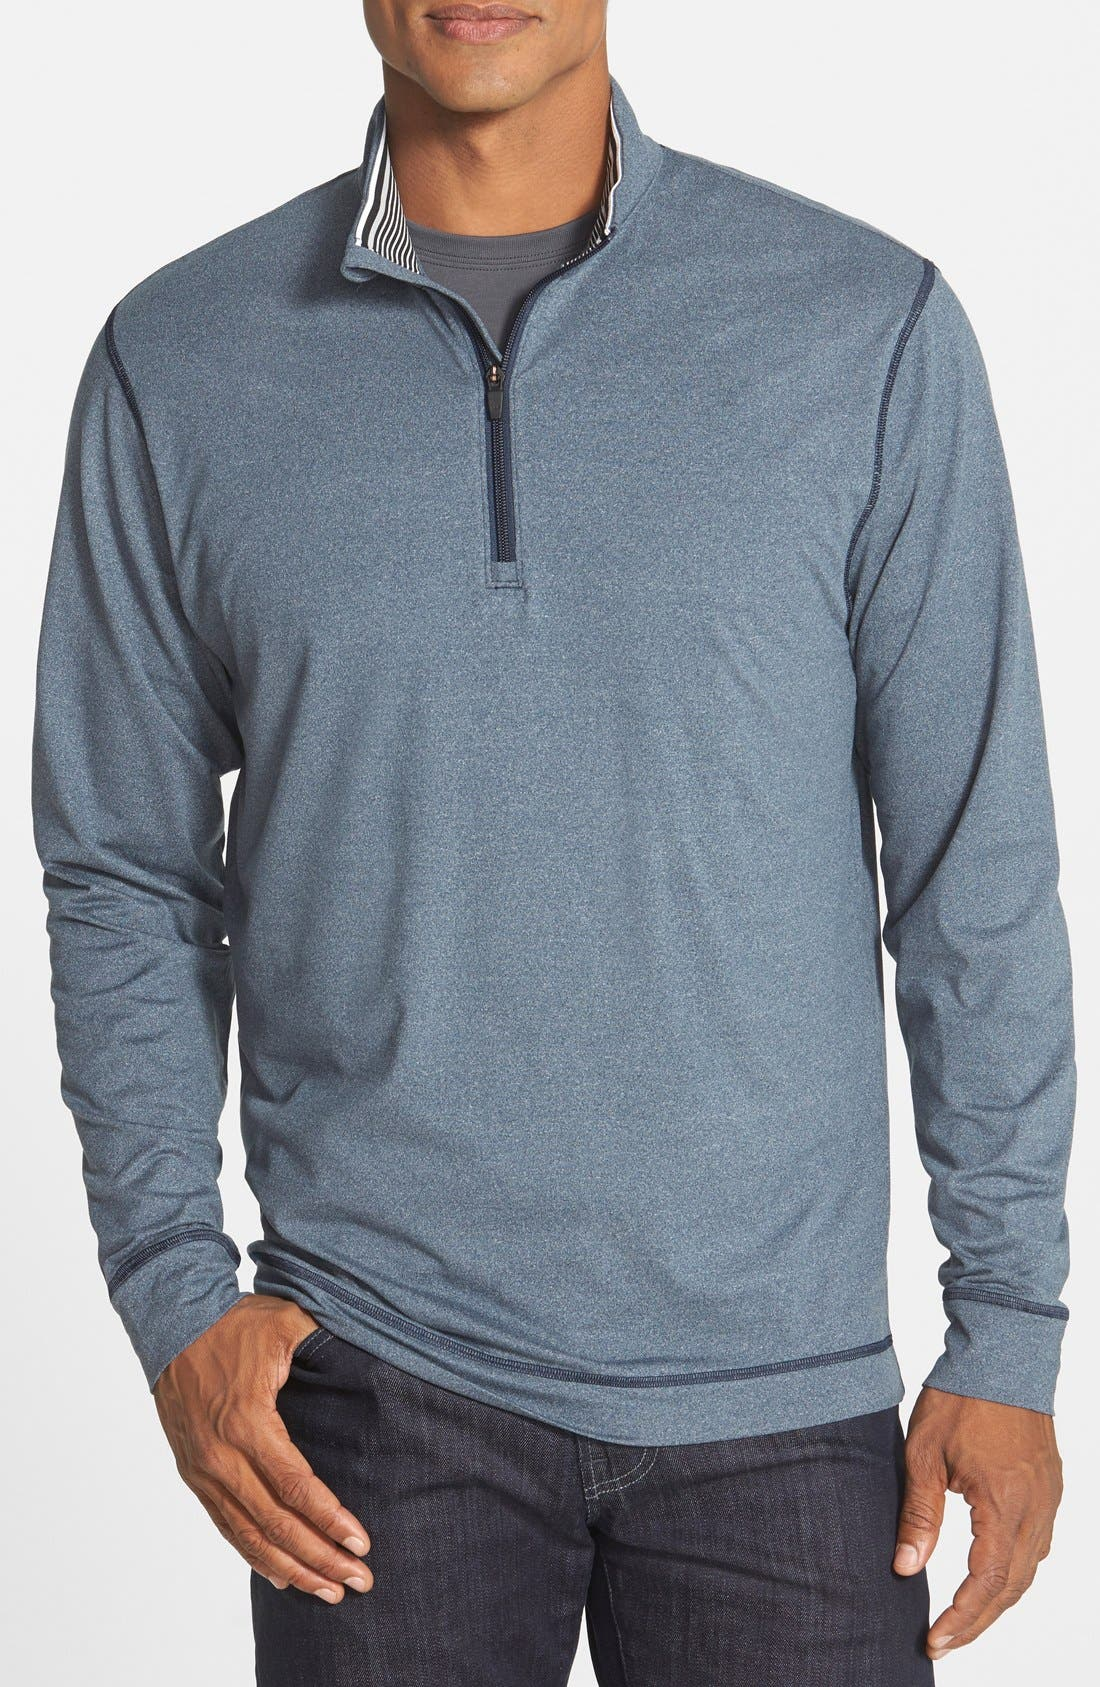 Cutter & Buck 'Topspin' DryTec Half Zip Pullover (Online Only)